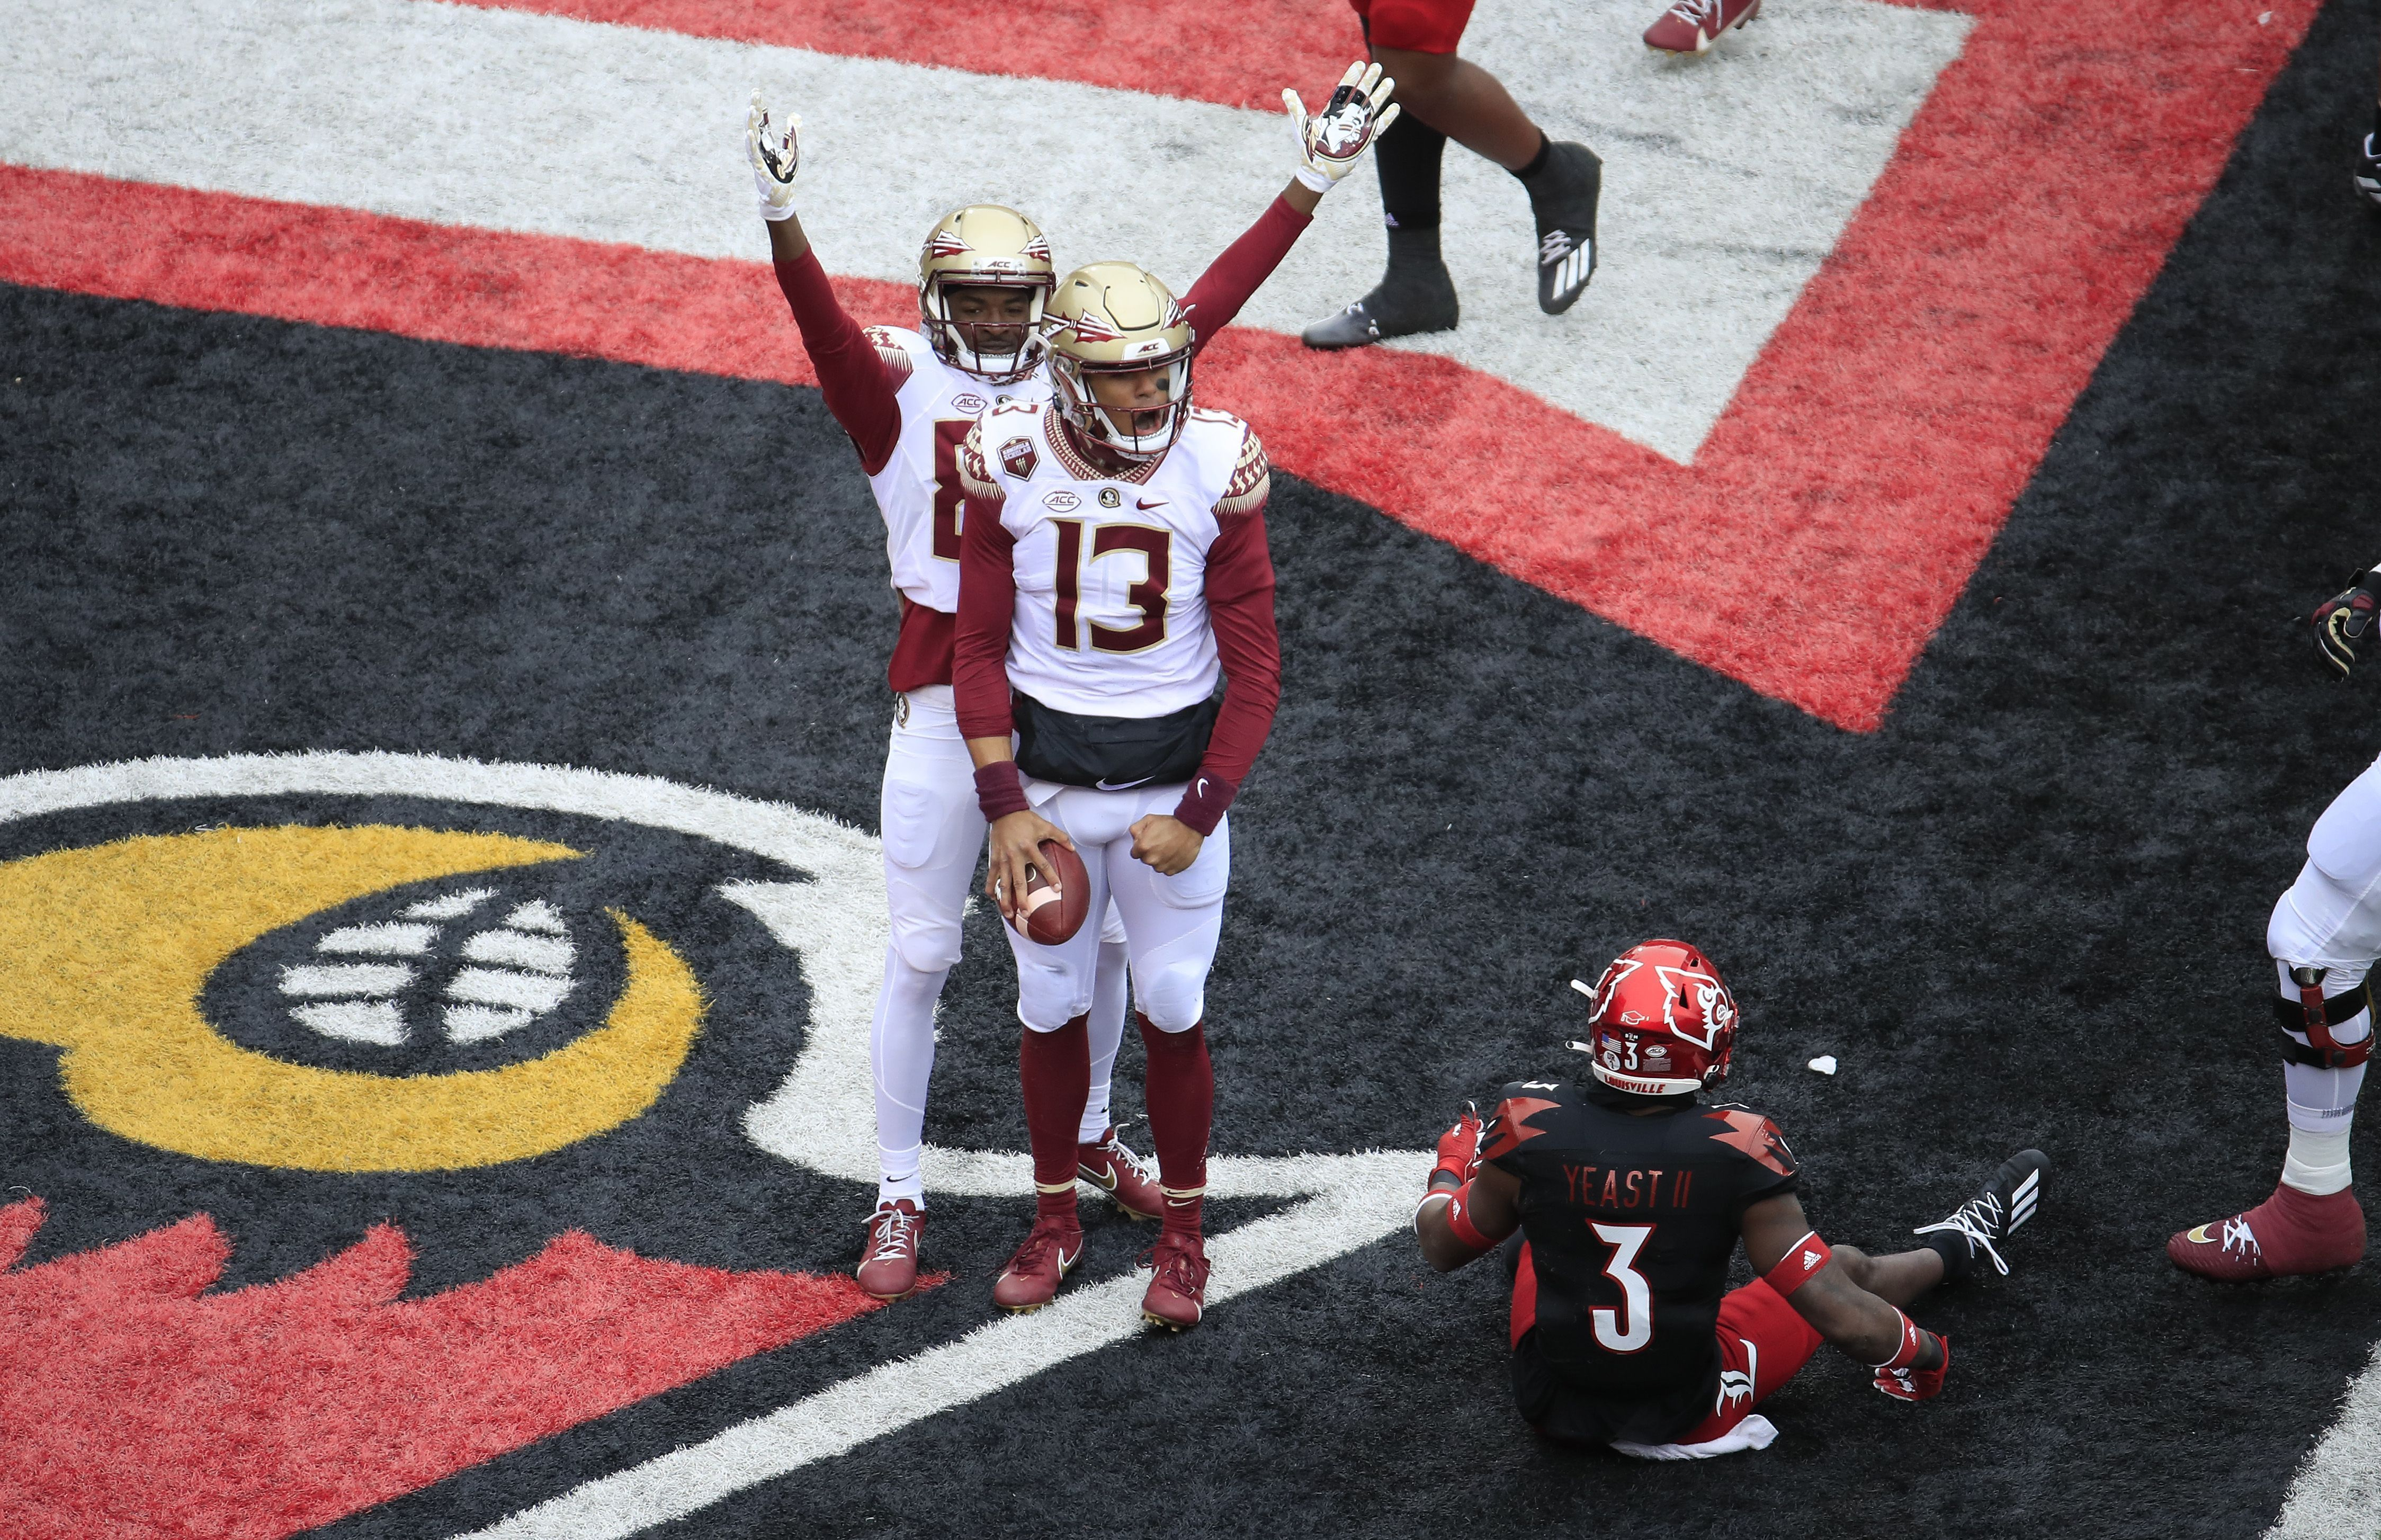 Jordan Travis of the Florida State Seminoles celebrates after running for a touchdown against the Louisville Cardinals at Cardinal Stadium on October 24, 2020 in Louisville, Kentucky.